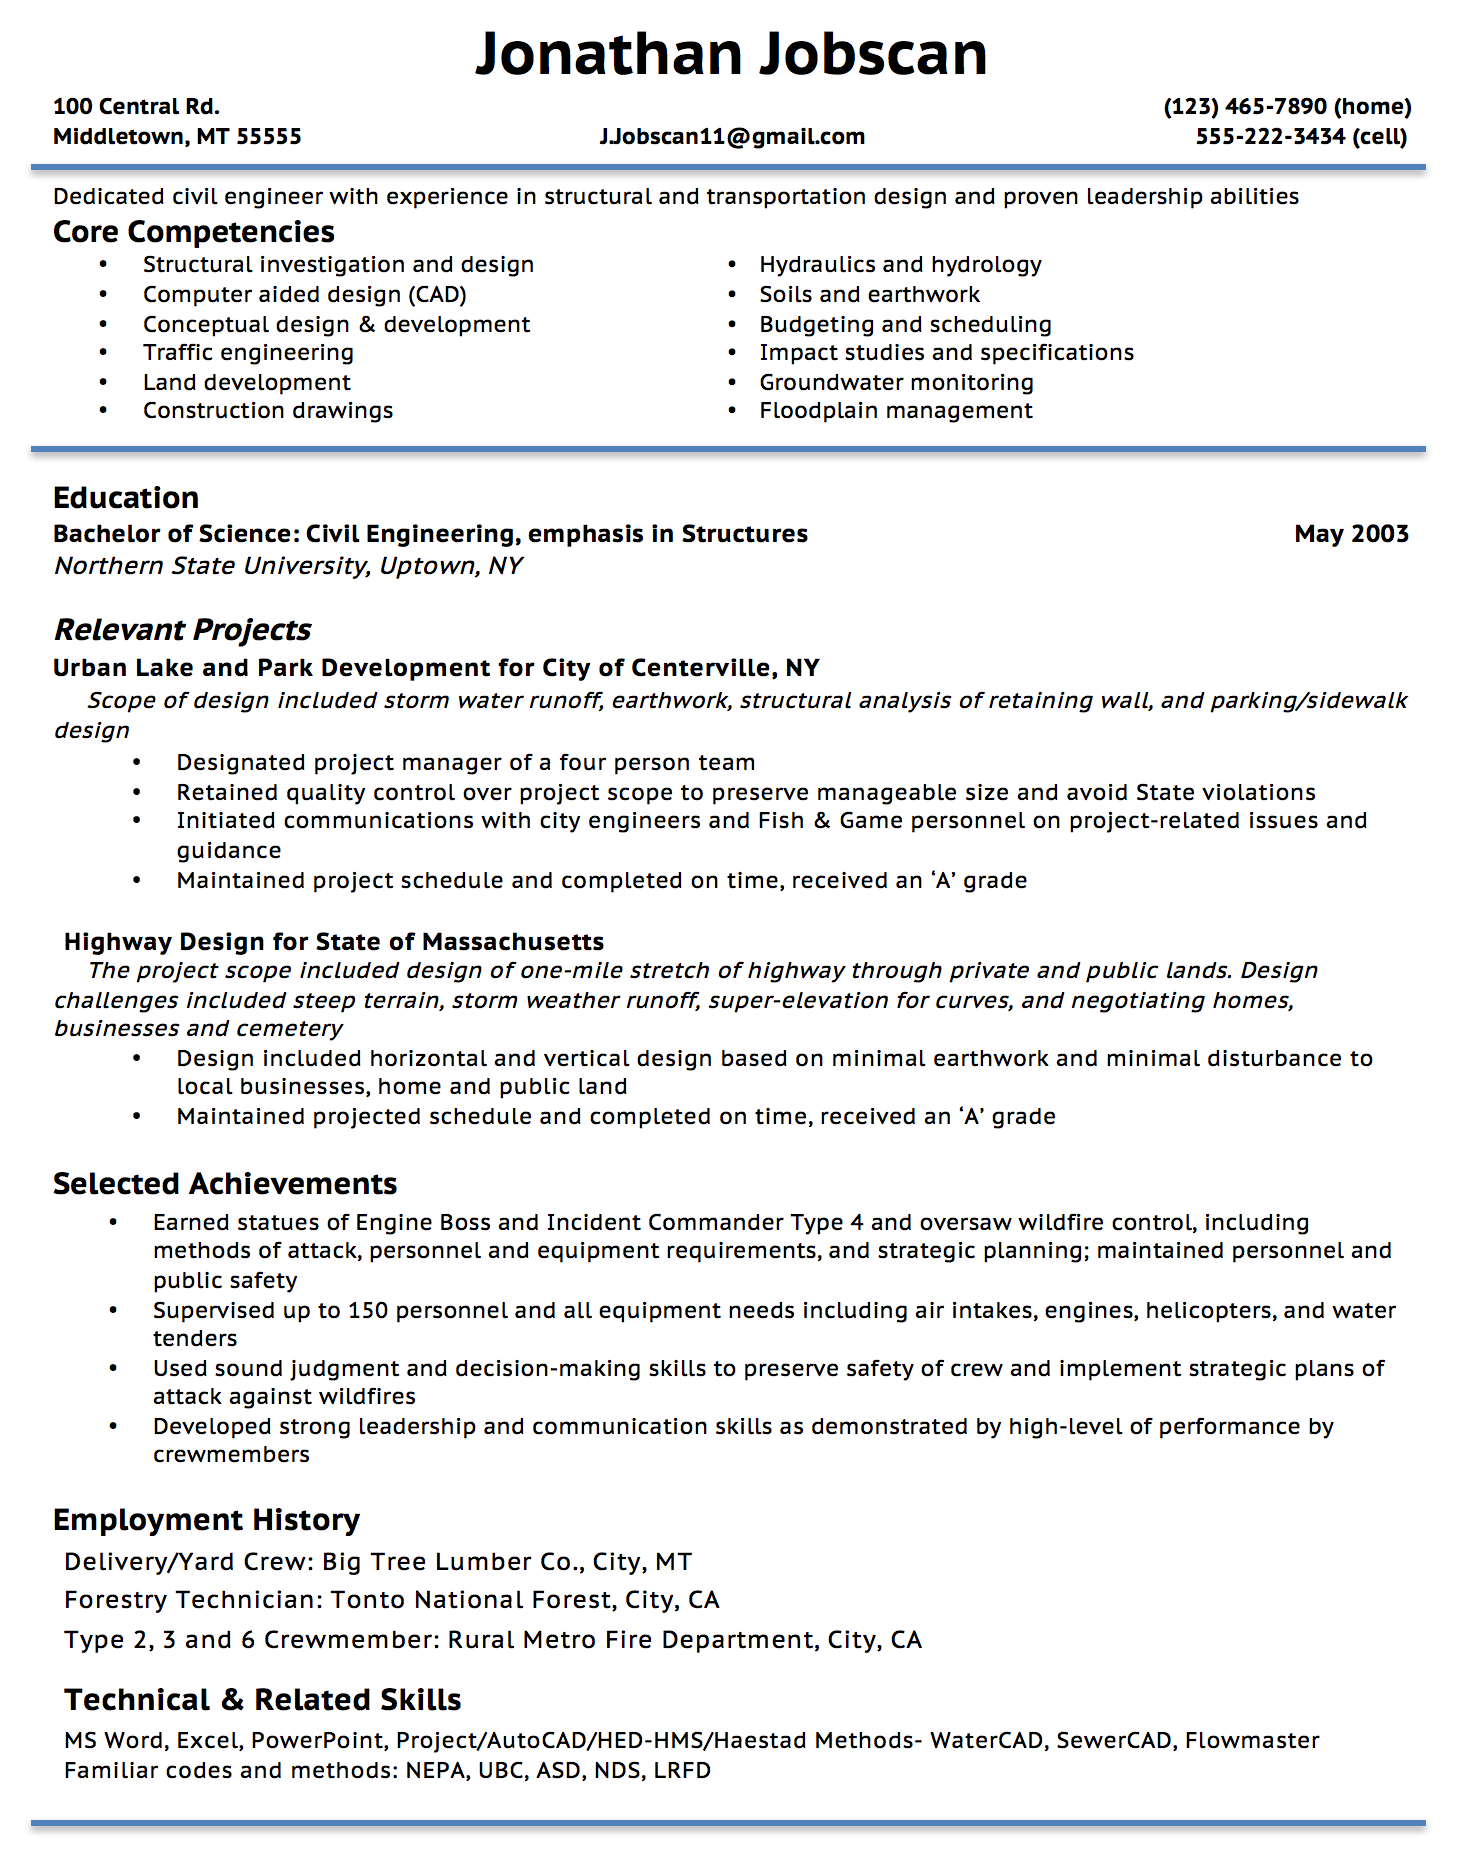 Opposenewapstandardsus  Prepossessing Resume Writing Guide  Jobscan With Glamorous Example Of A Functional Resume Format With Astounding Resume Folder Also Resume Music In Addition Monster Resume And Resume Cover Page As Well As Resume Search Additionally Resume App From Jobscanco With Opposenewapstandardsus  Glamorous Resume Writing Guide  Jobscan With Astounding Example Of A Functional Resume Format And Prepossessing Resume Folder Also Resume Music In Addition Monster Resume From Jobscanco